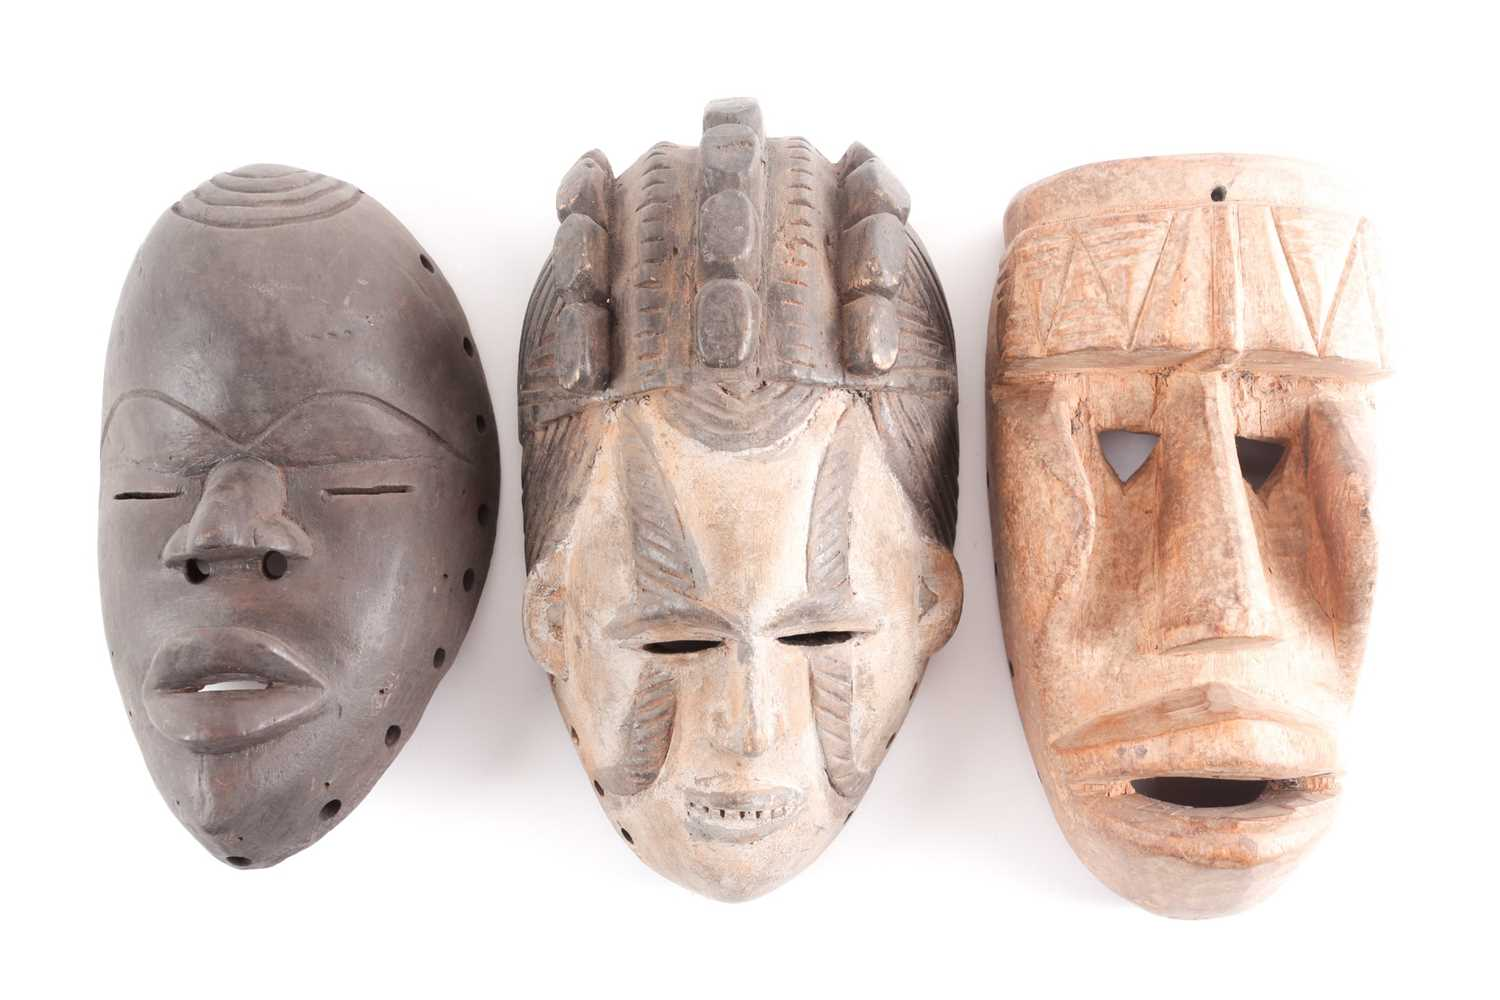 A Guere mask, Ivory Coast, the protruding forehead with geometric carving, above triangular eyes